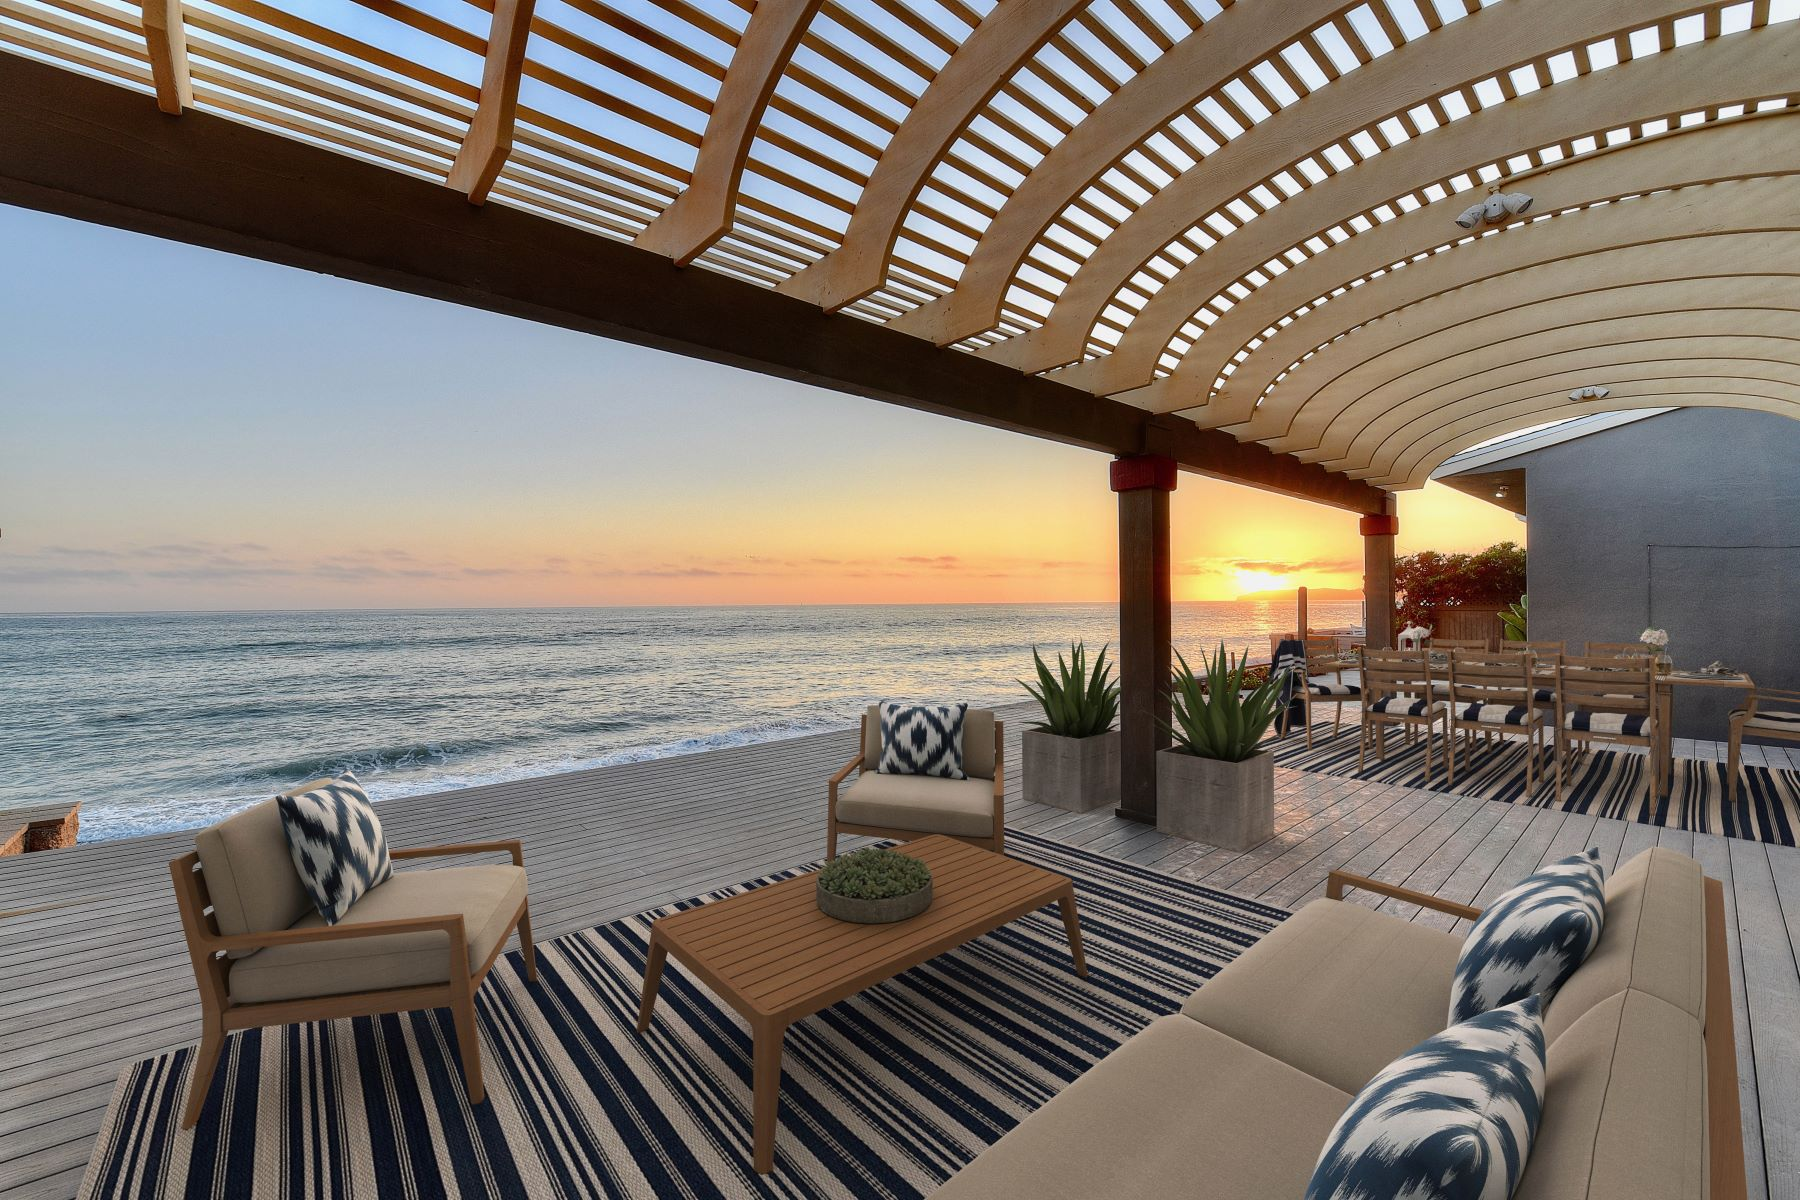 Single Family Homes for Sale at 35745 Beach Road Dana Point, California 92624 United States